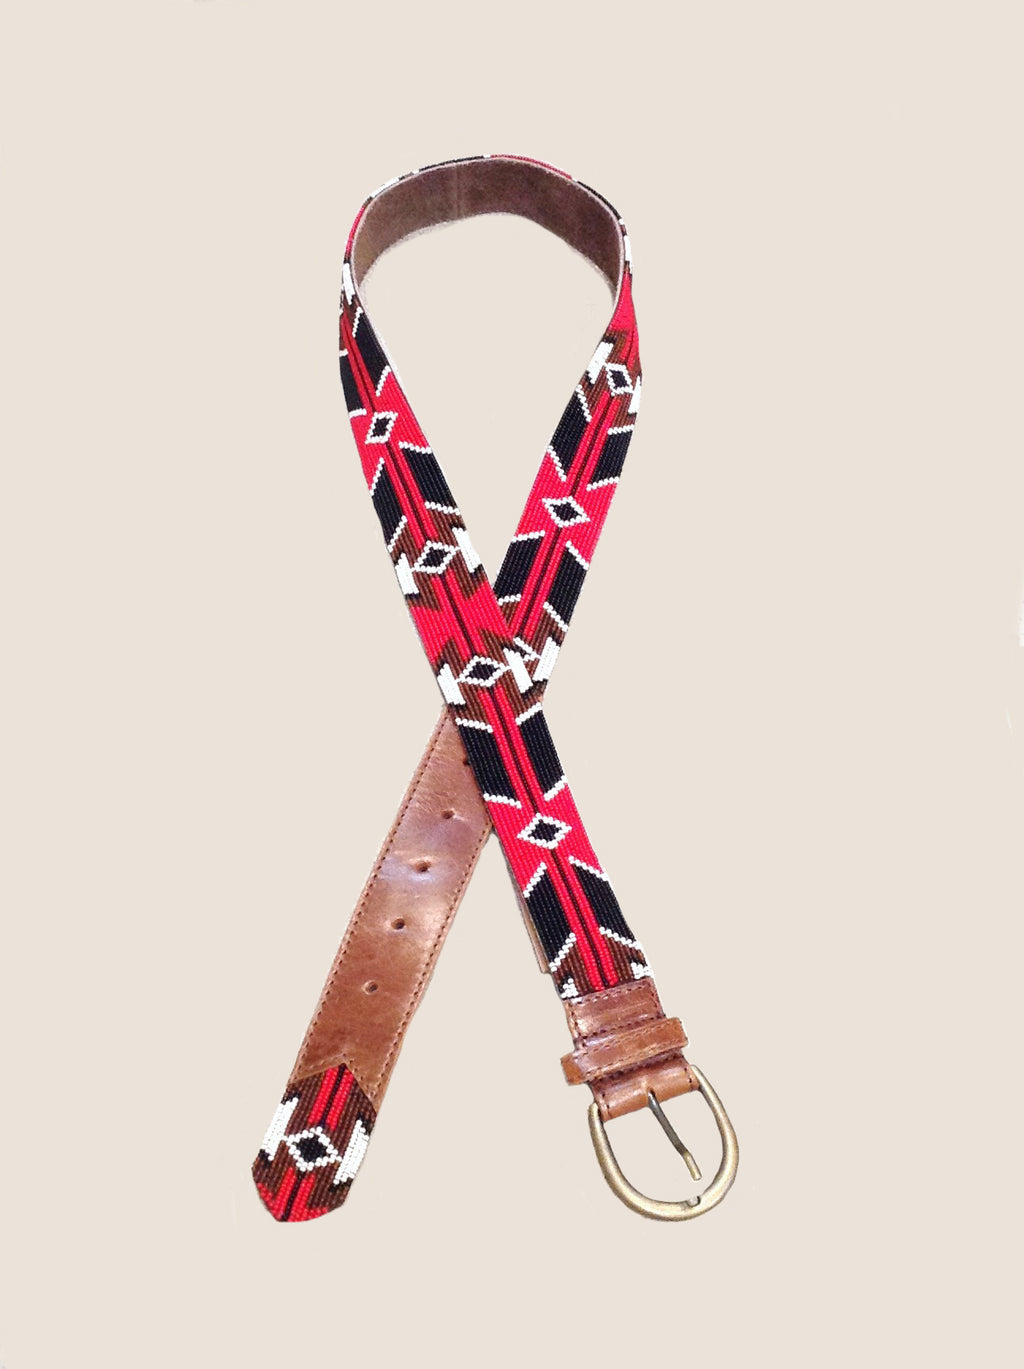 Embellished Leather Belt-Black, Red & Brown